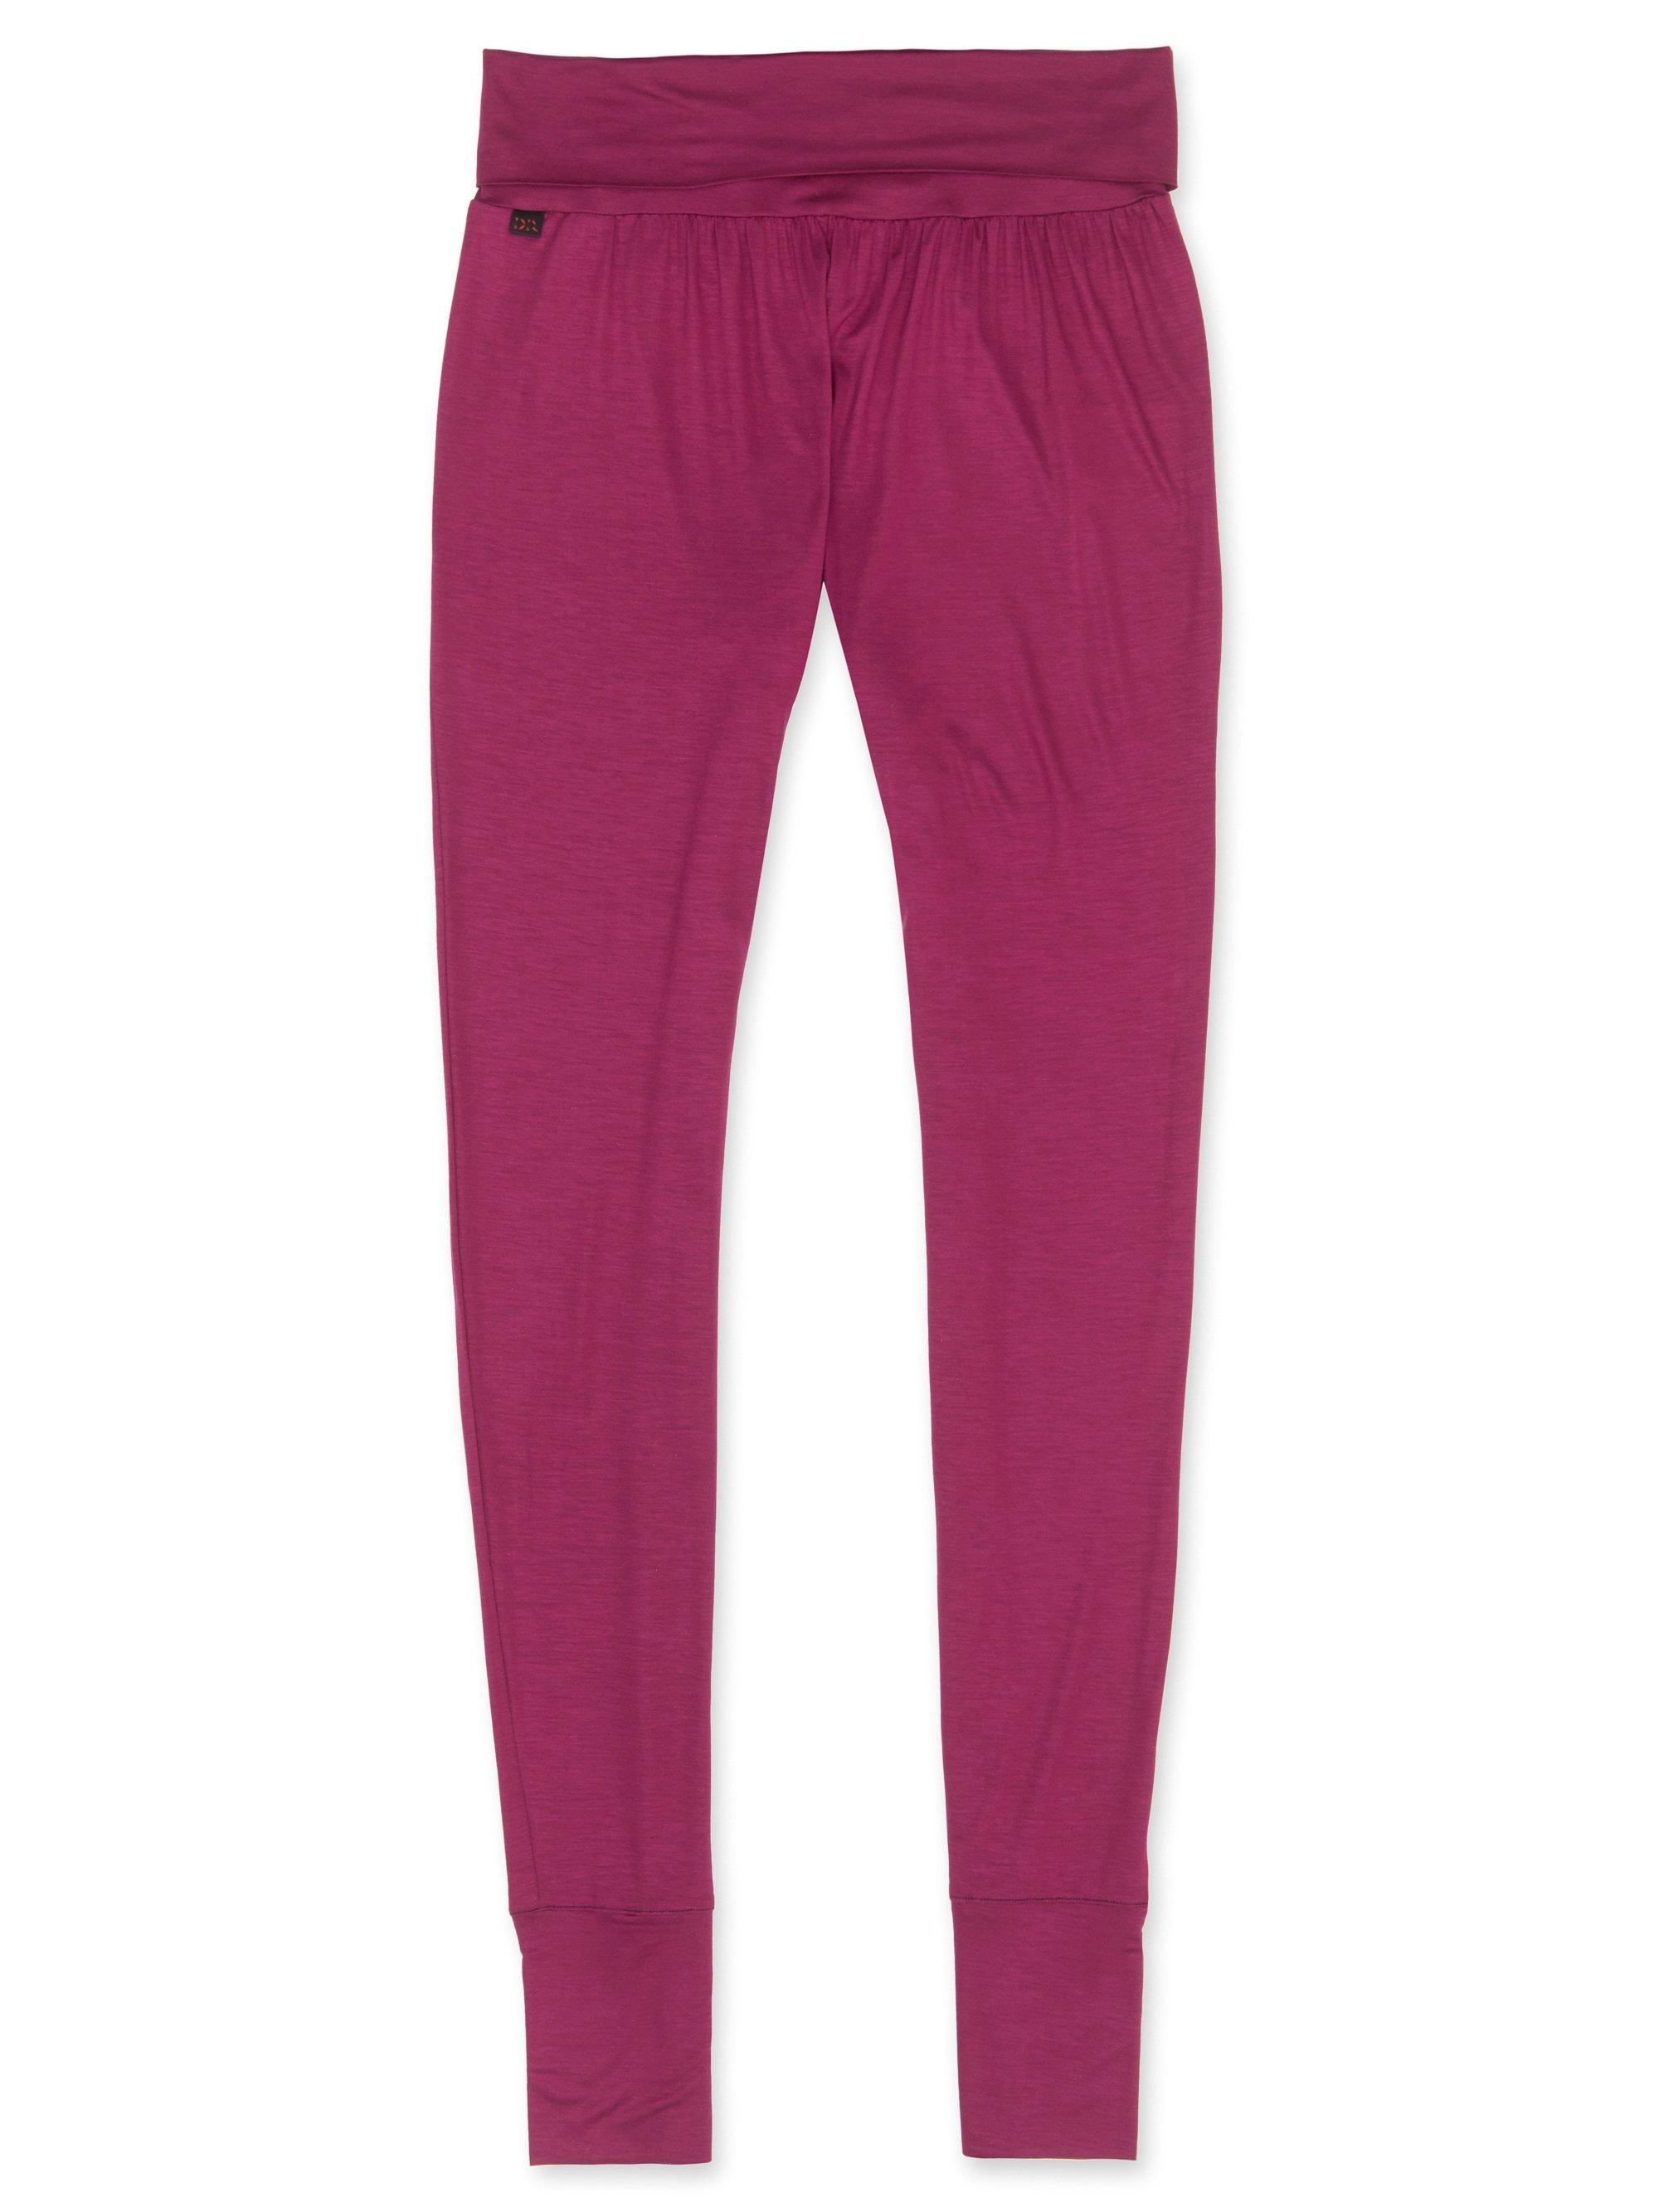 Ladies' Luxury Micromodal Lounge Trousers - Carla 1